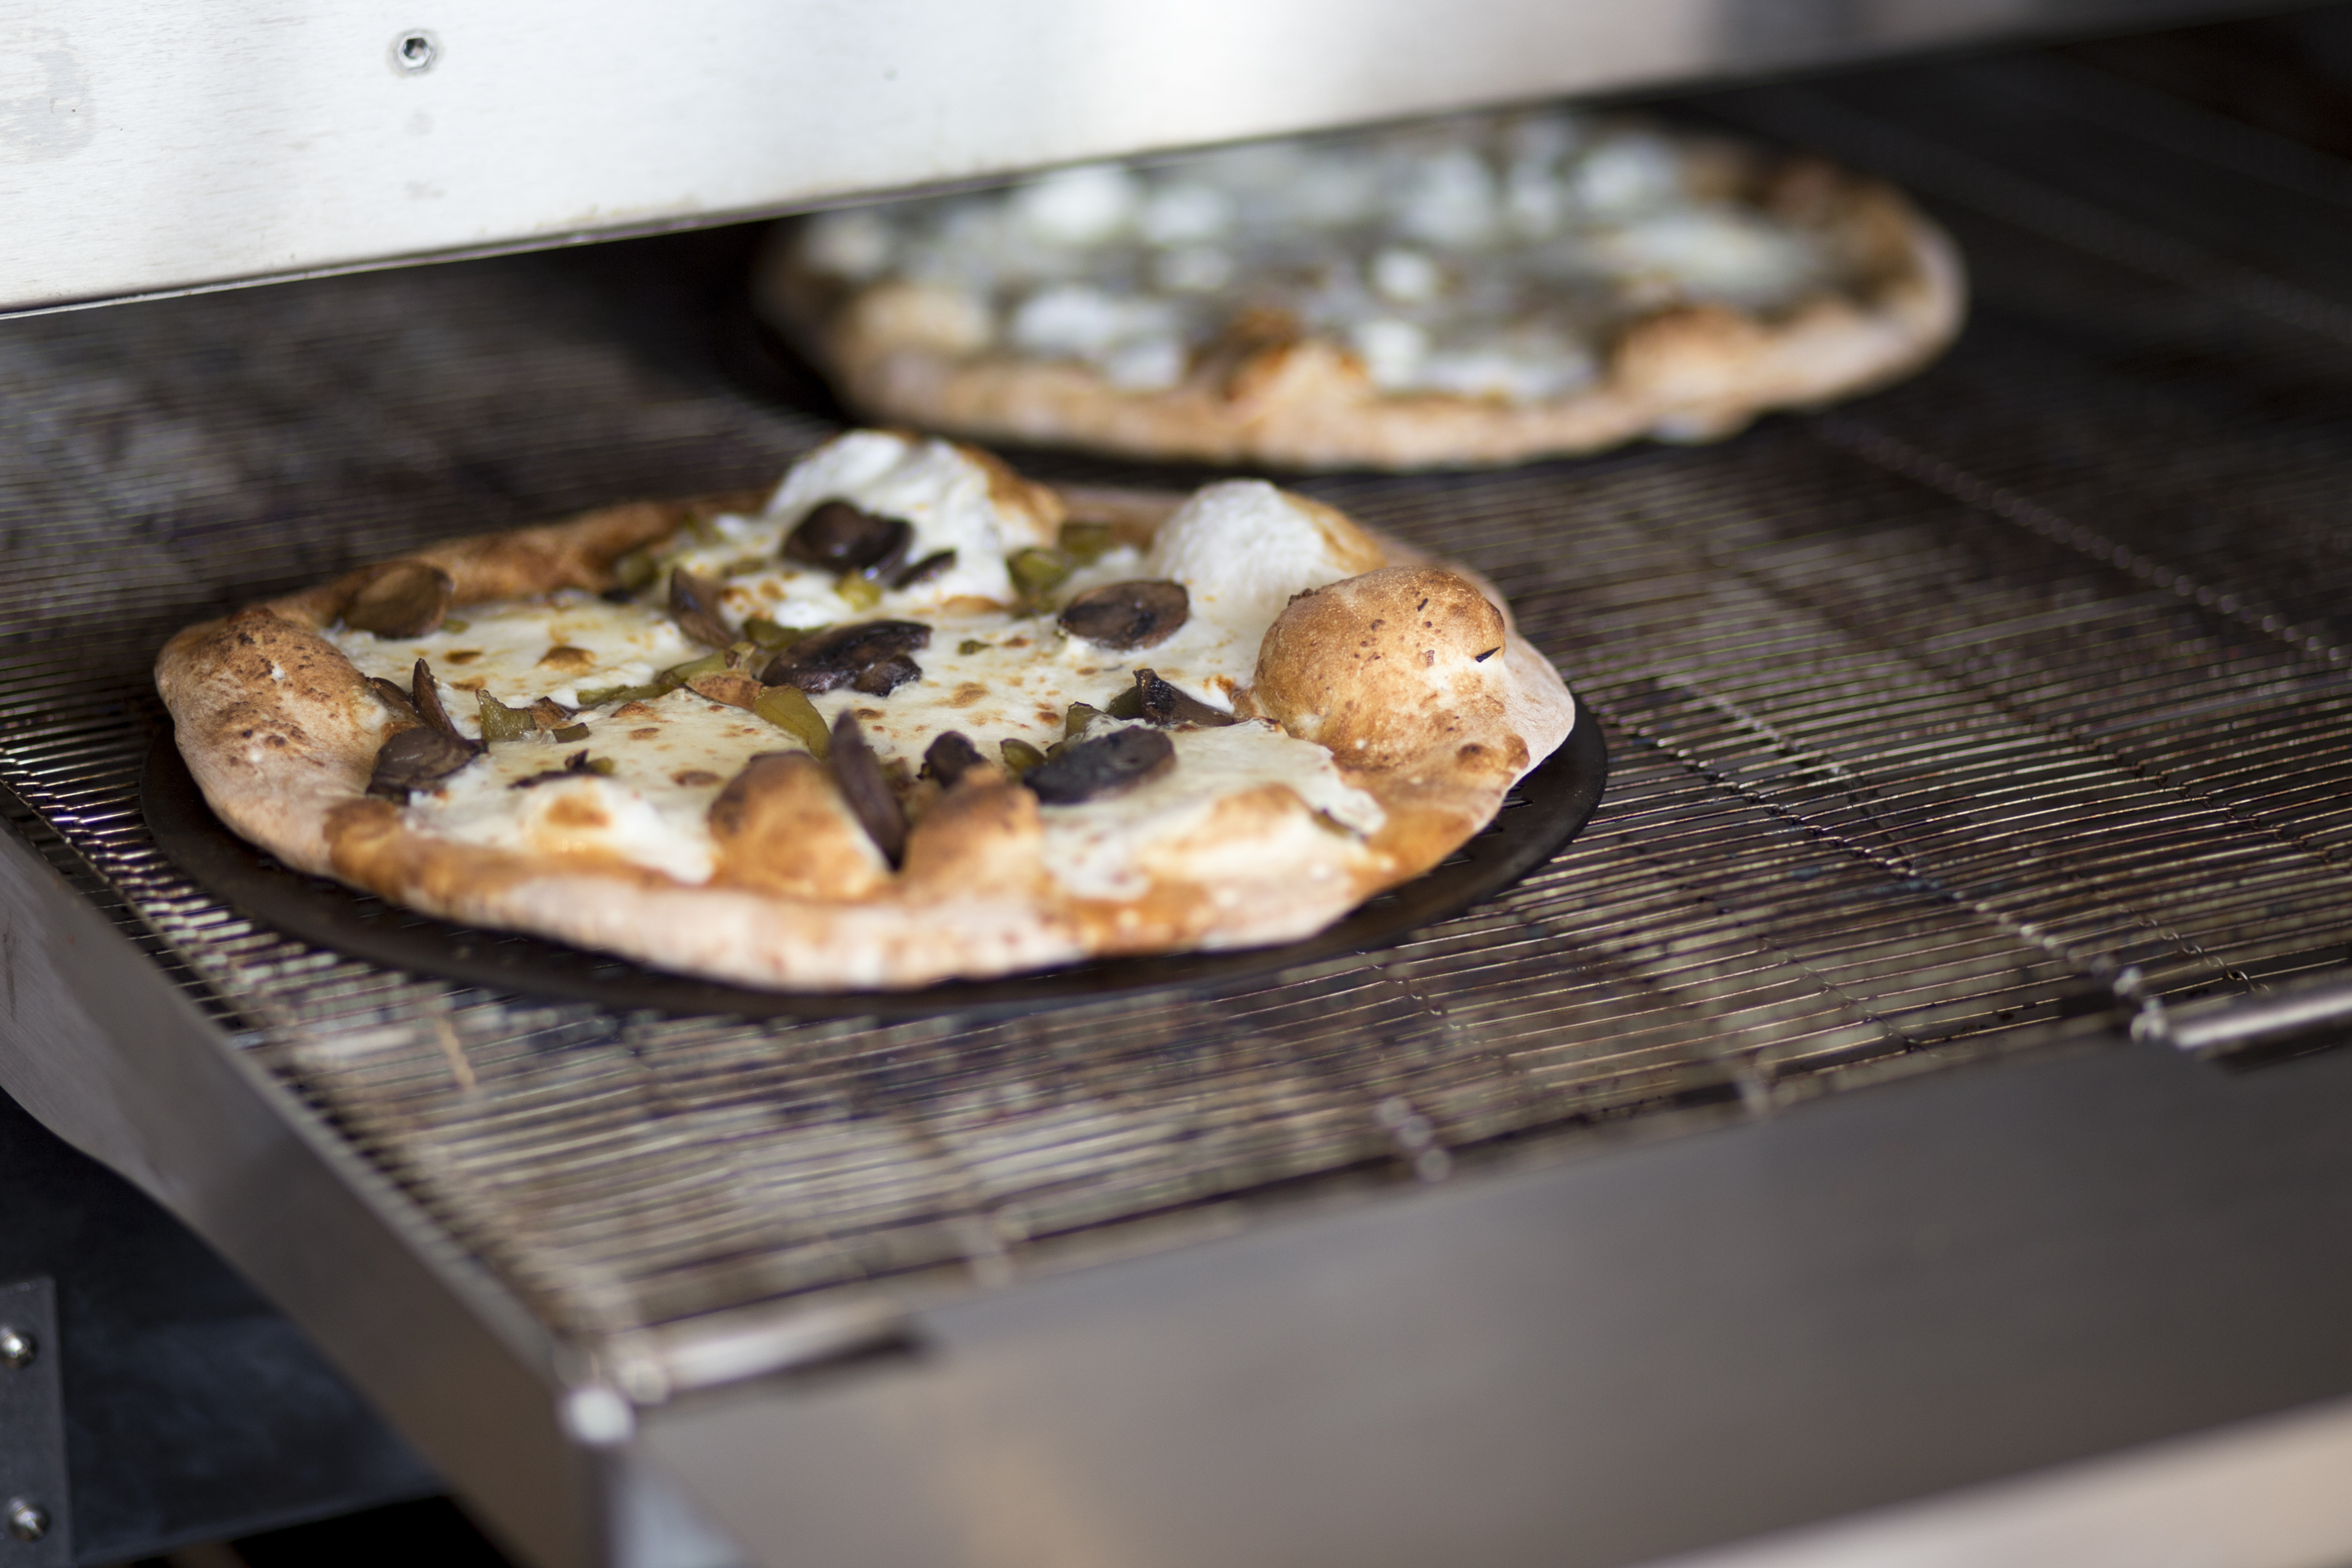 A pizza comes out of the oven at Snap Custom Pizza in Conshohocken Wednesday, July 26, 2017. Snap opened its sixth location July 25. ( MARGO REED / Staff Photographer )